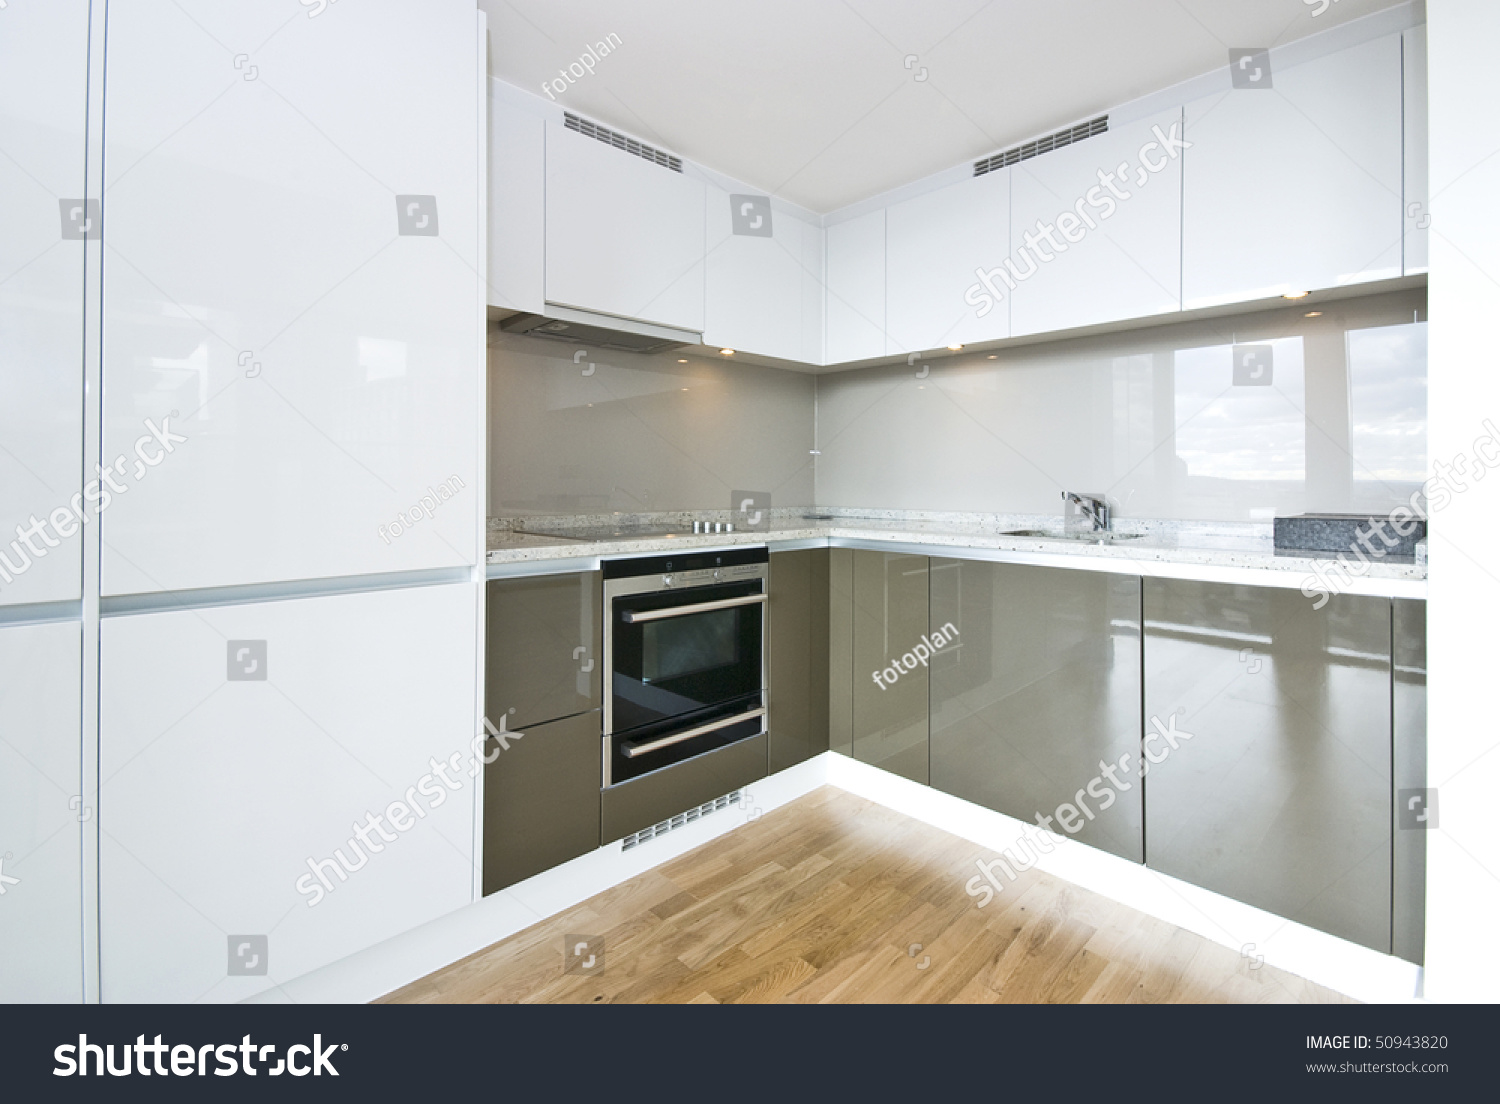 Modern fully fitted kitchen kitchen appliances stock photo for Modern fitted kitchen